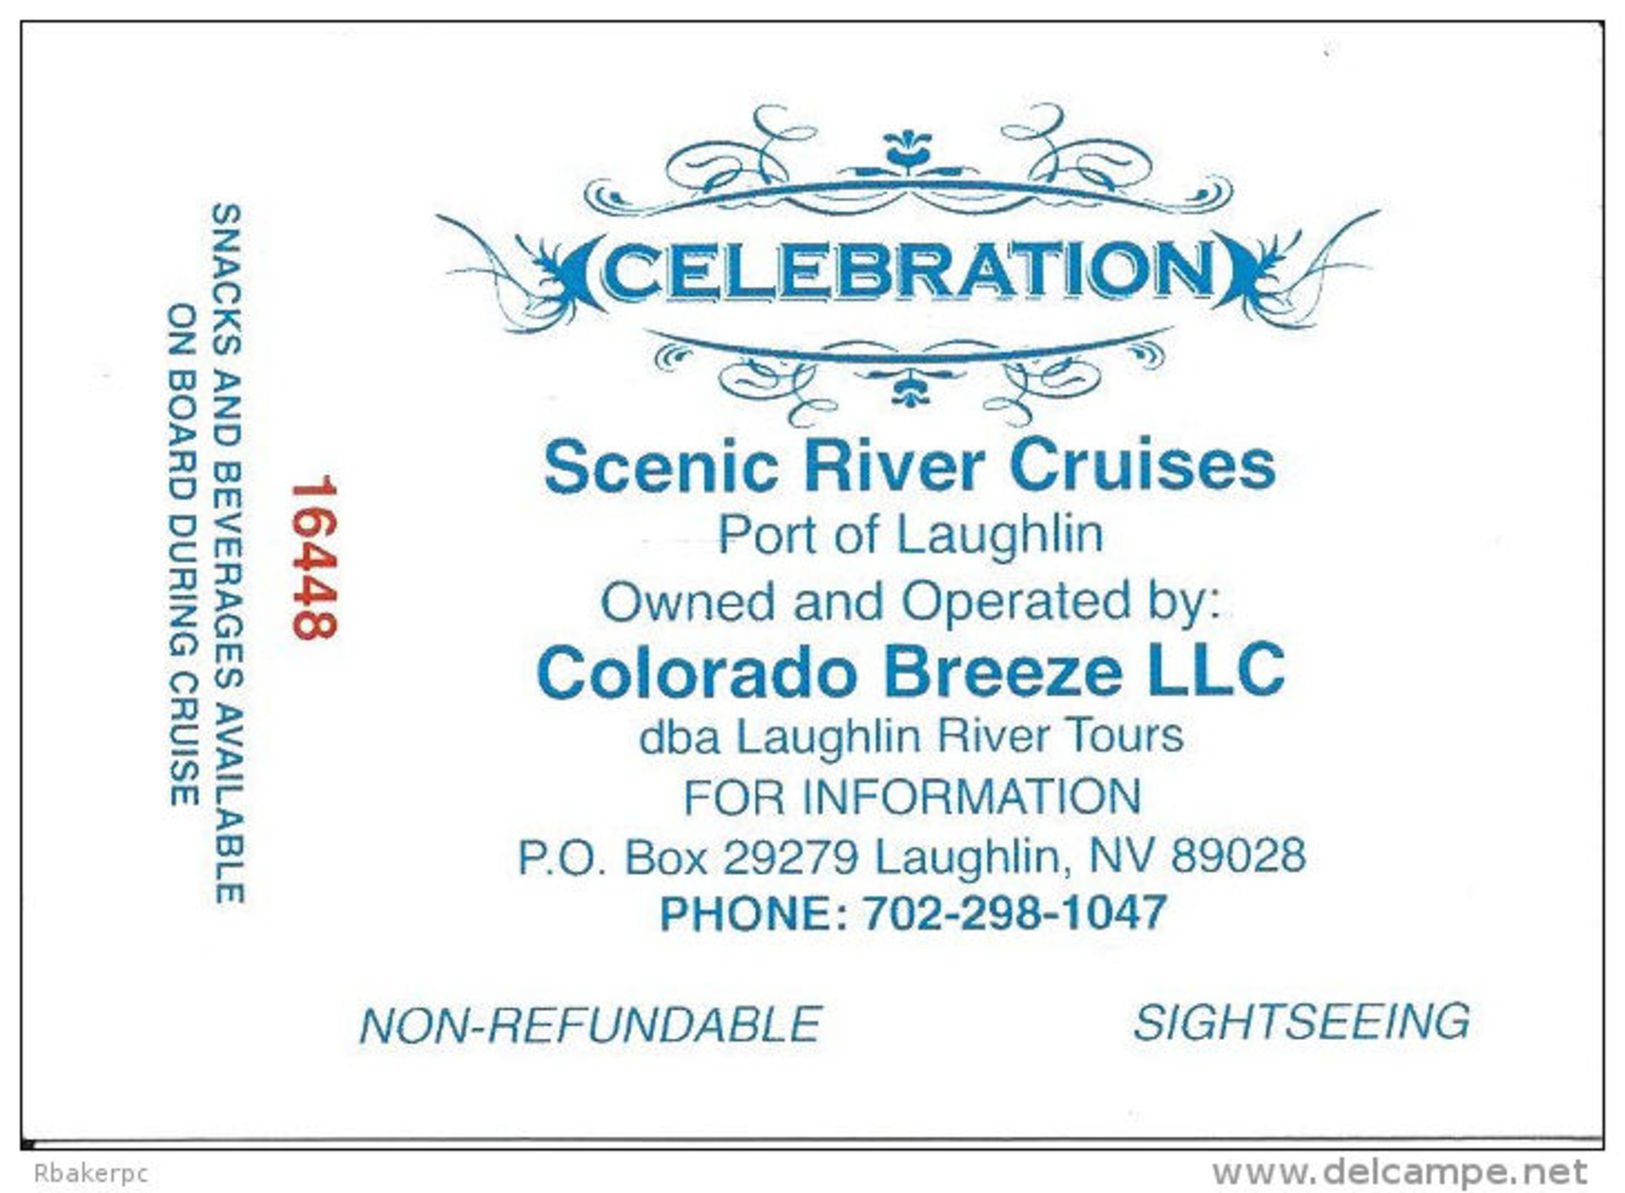 Scenic River Cruises Port Of Laughlin, NV USA - Celebration Cruise Ticket Stubs - Tickets - Vouchers